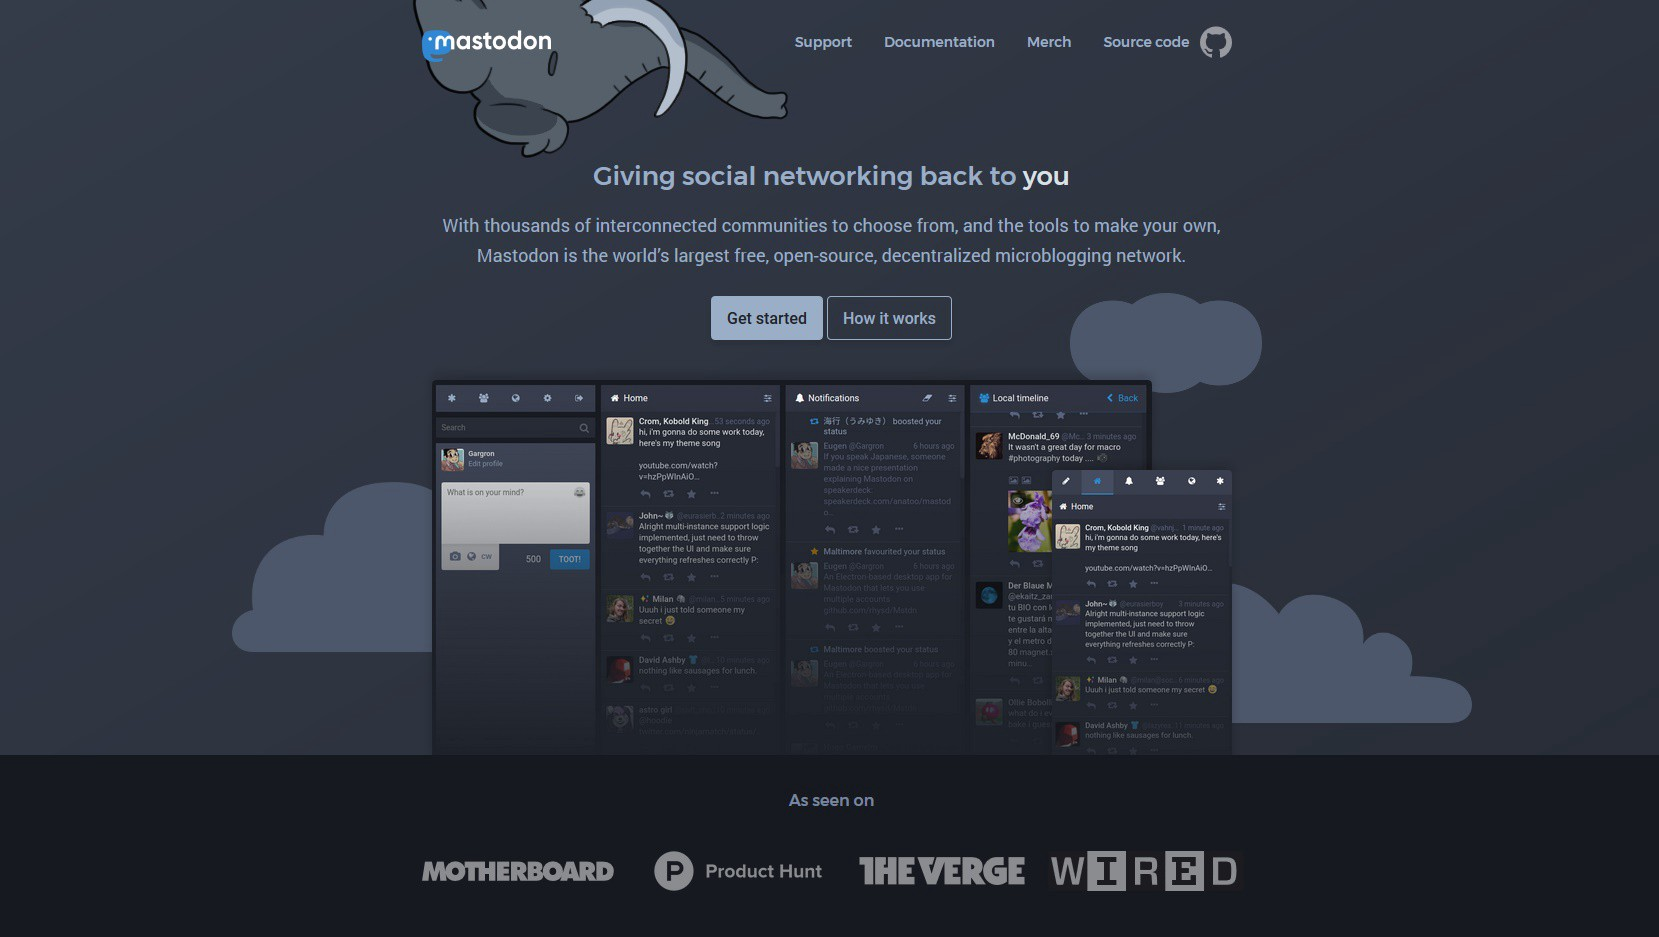 *Giving social networking back to you*. From: <https://docs.joinmastodon.org/>